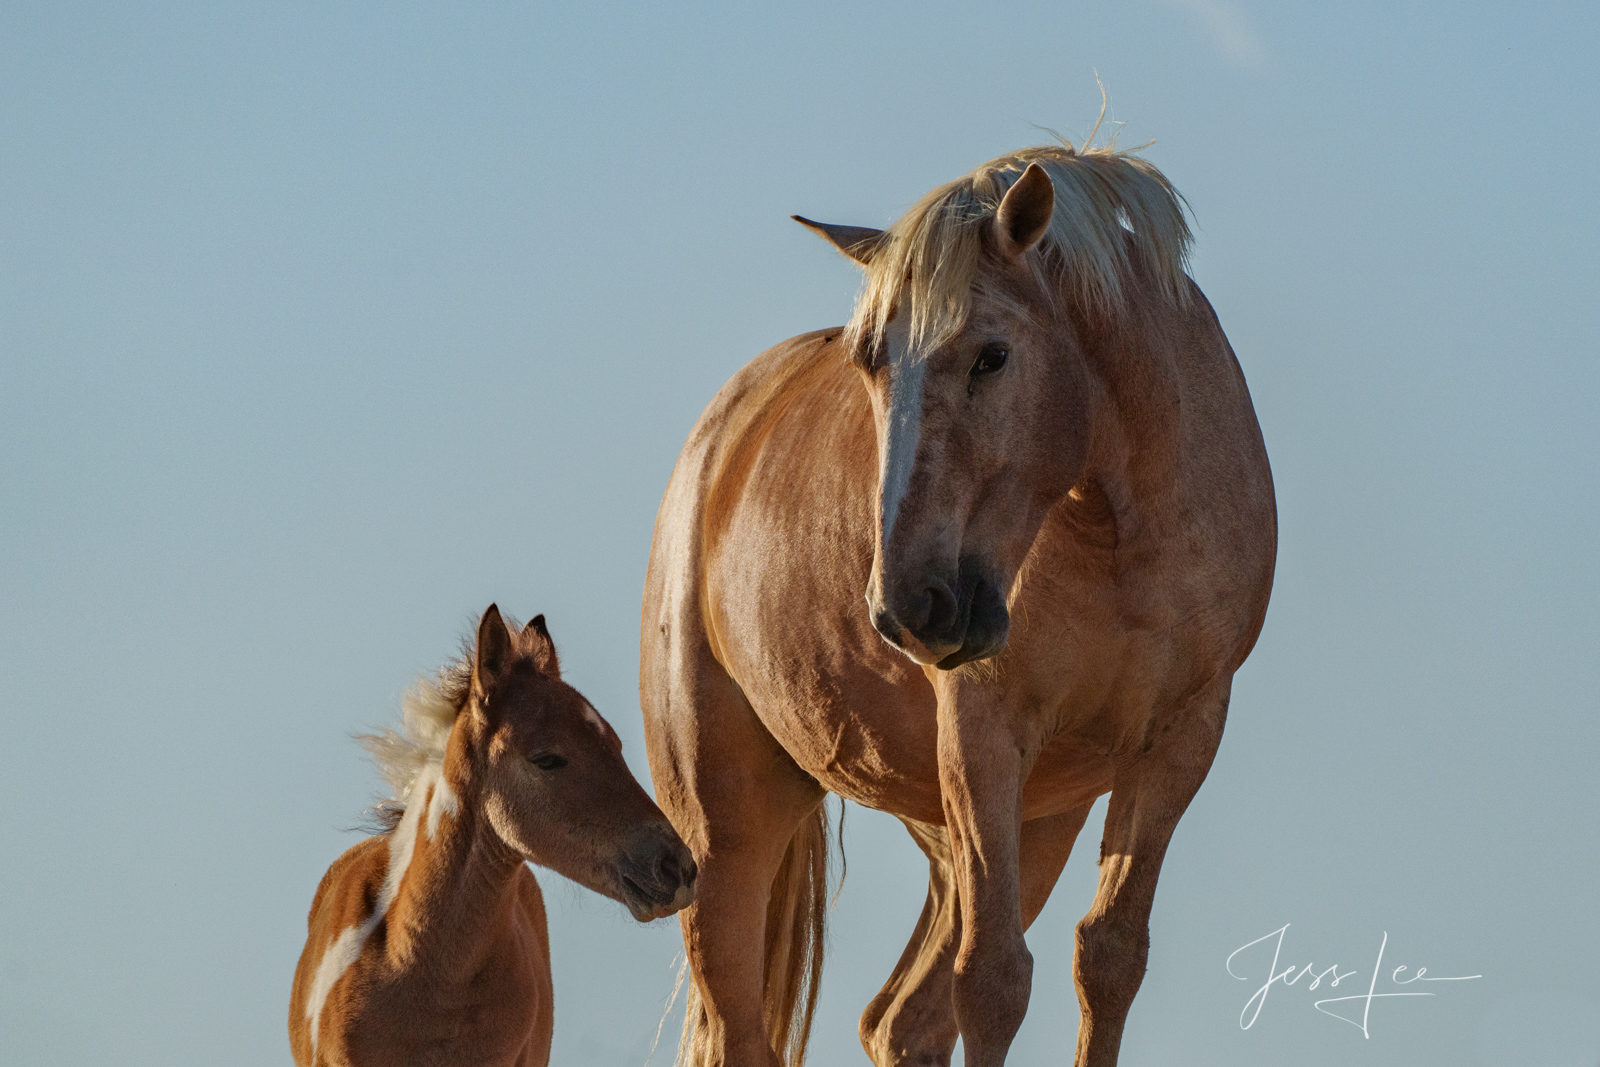 Fine Art Limited Edition Photography of Wild Mustang Mare and Foal Horses. Wild Horses or Mustang herd. This is part of the luxurious...